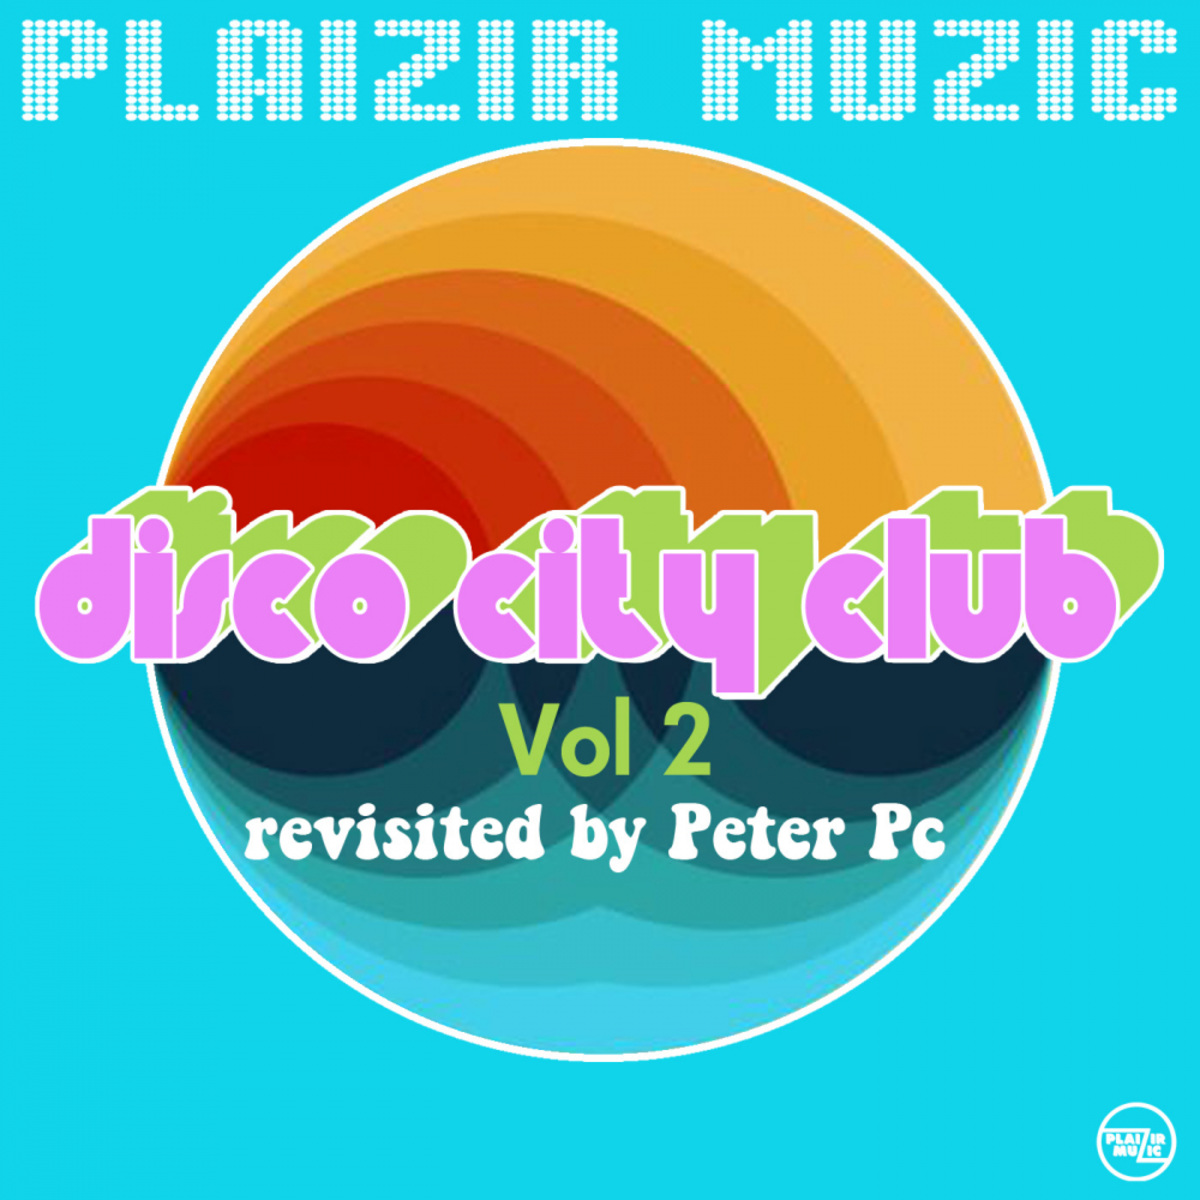 Peter Pc - Procurando O Chacal (Revisited Remix)